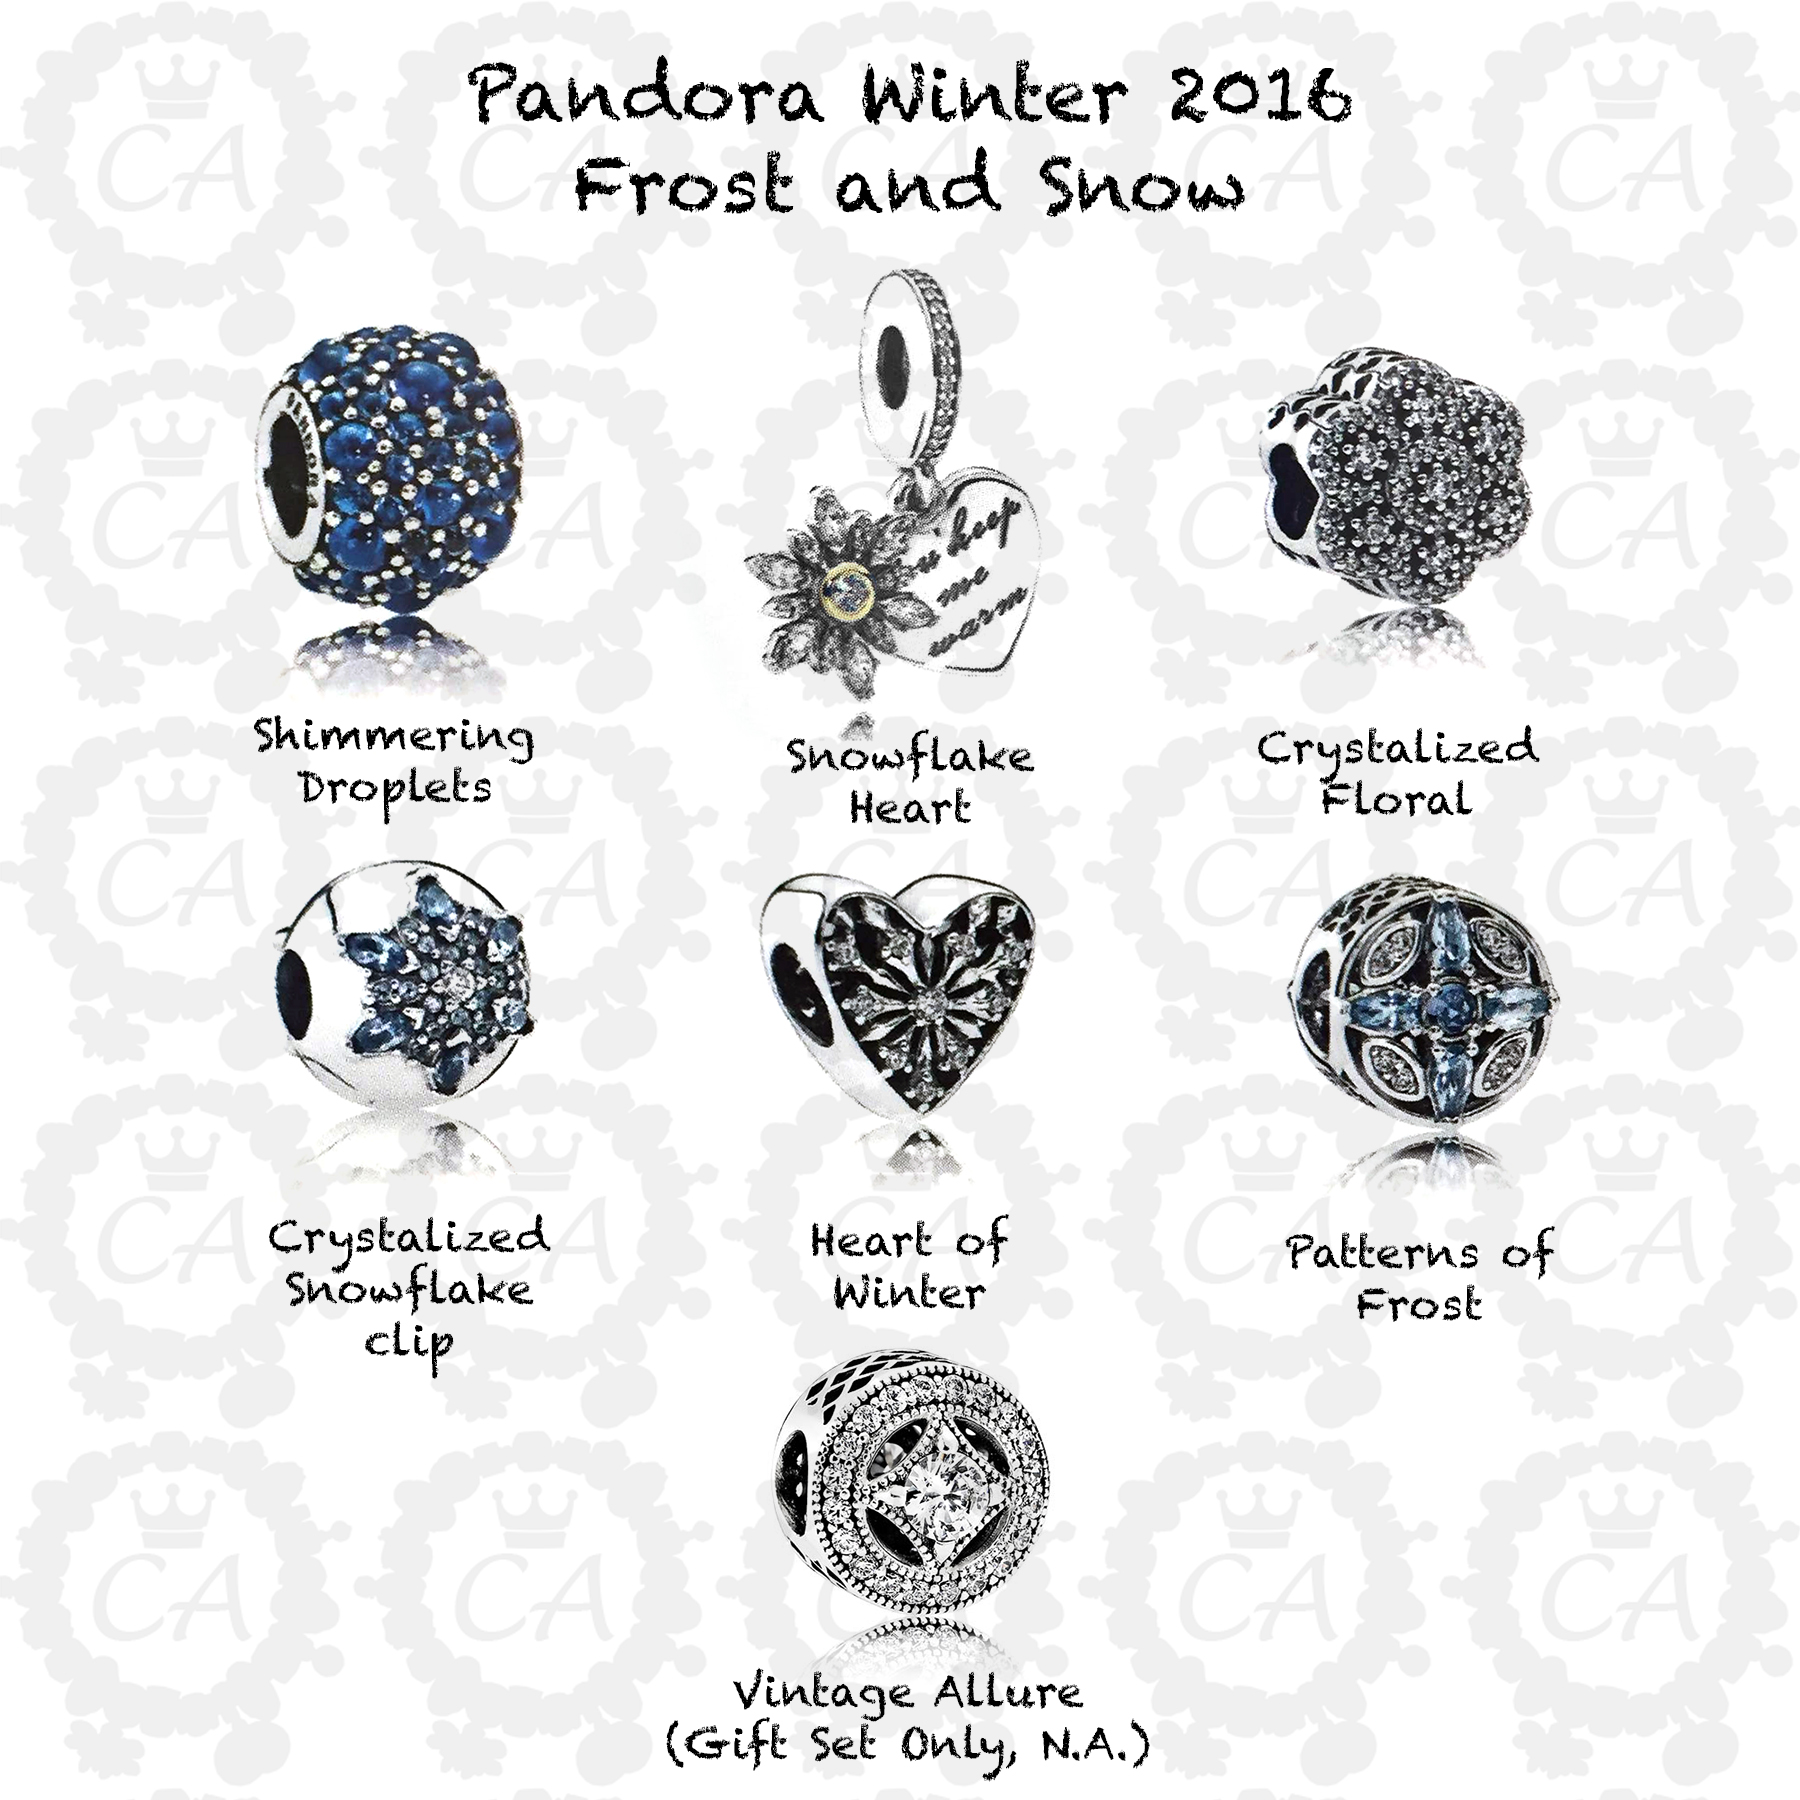 pandora-winter-2016-snow